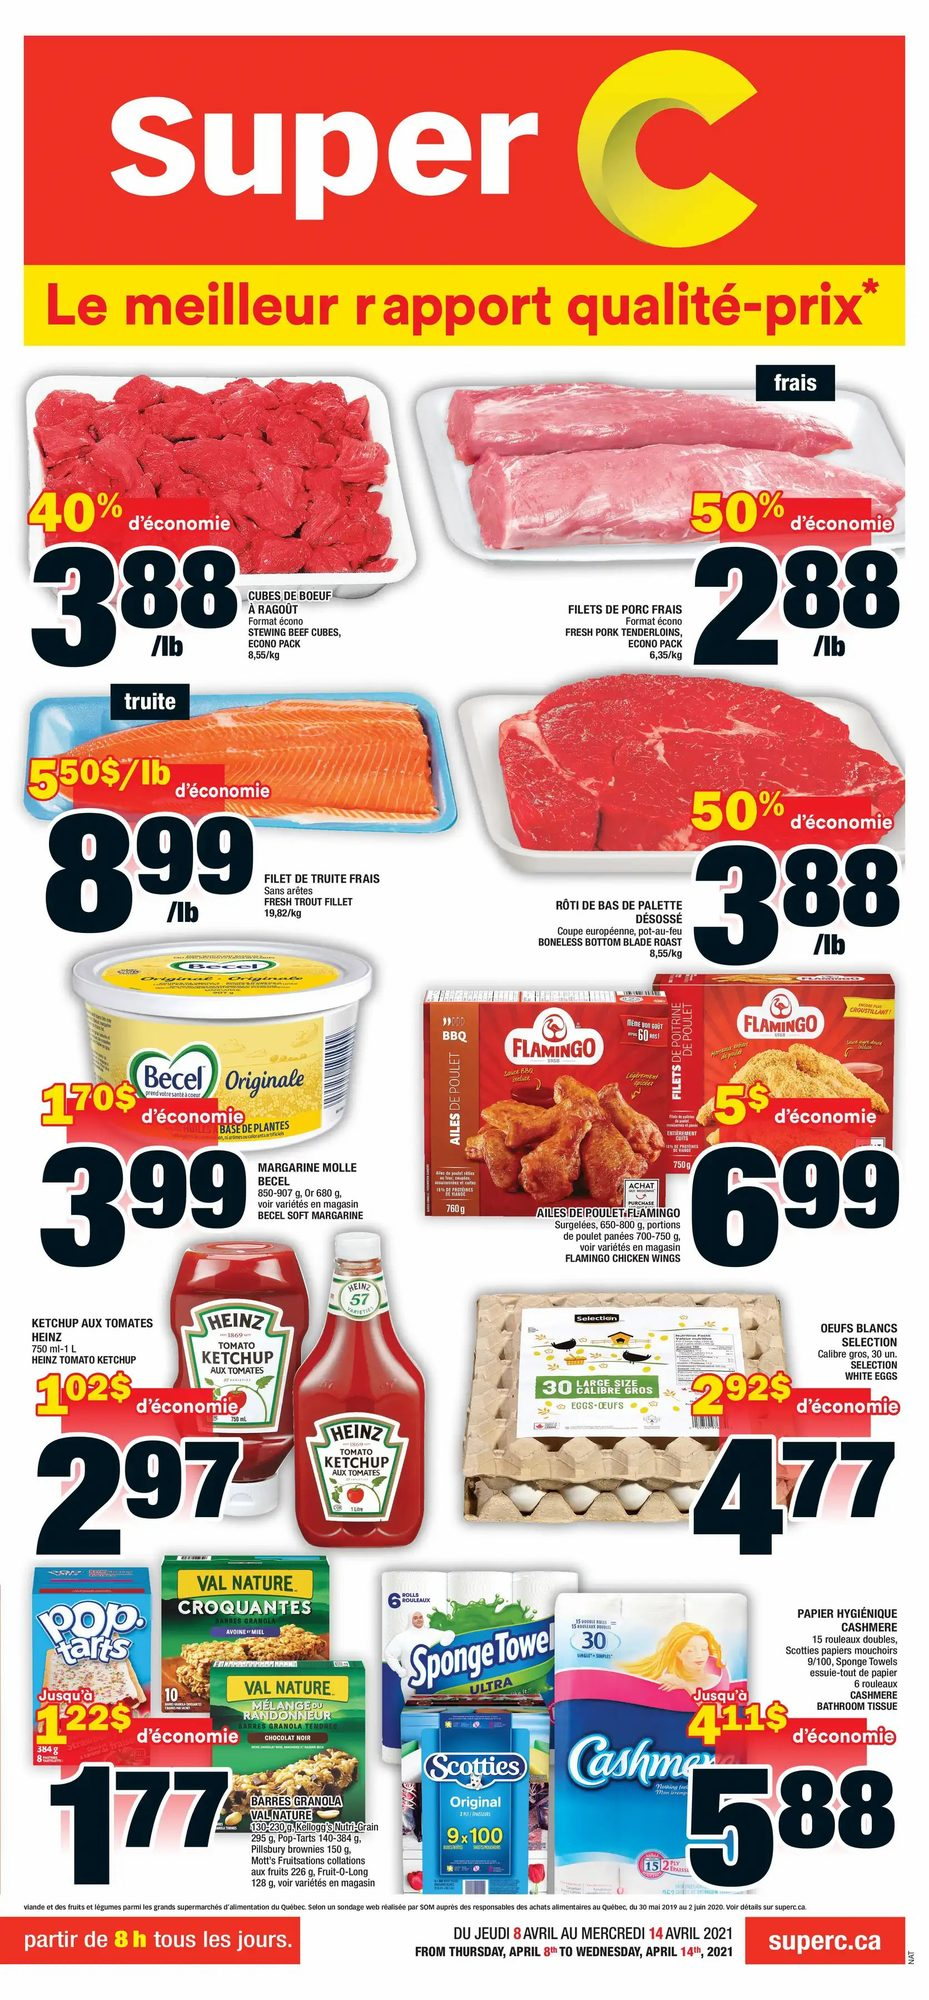 Super C - Weekly Flyer Specials